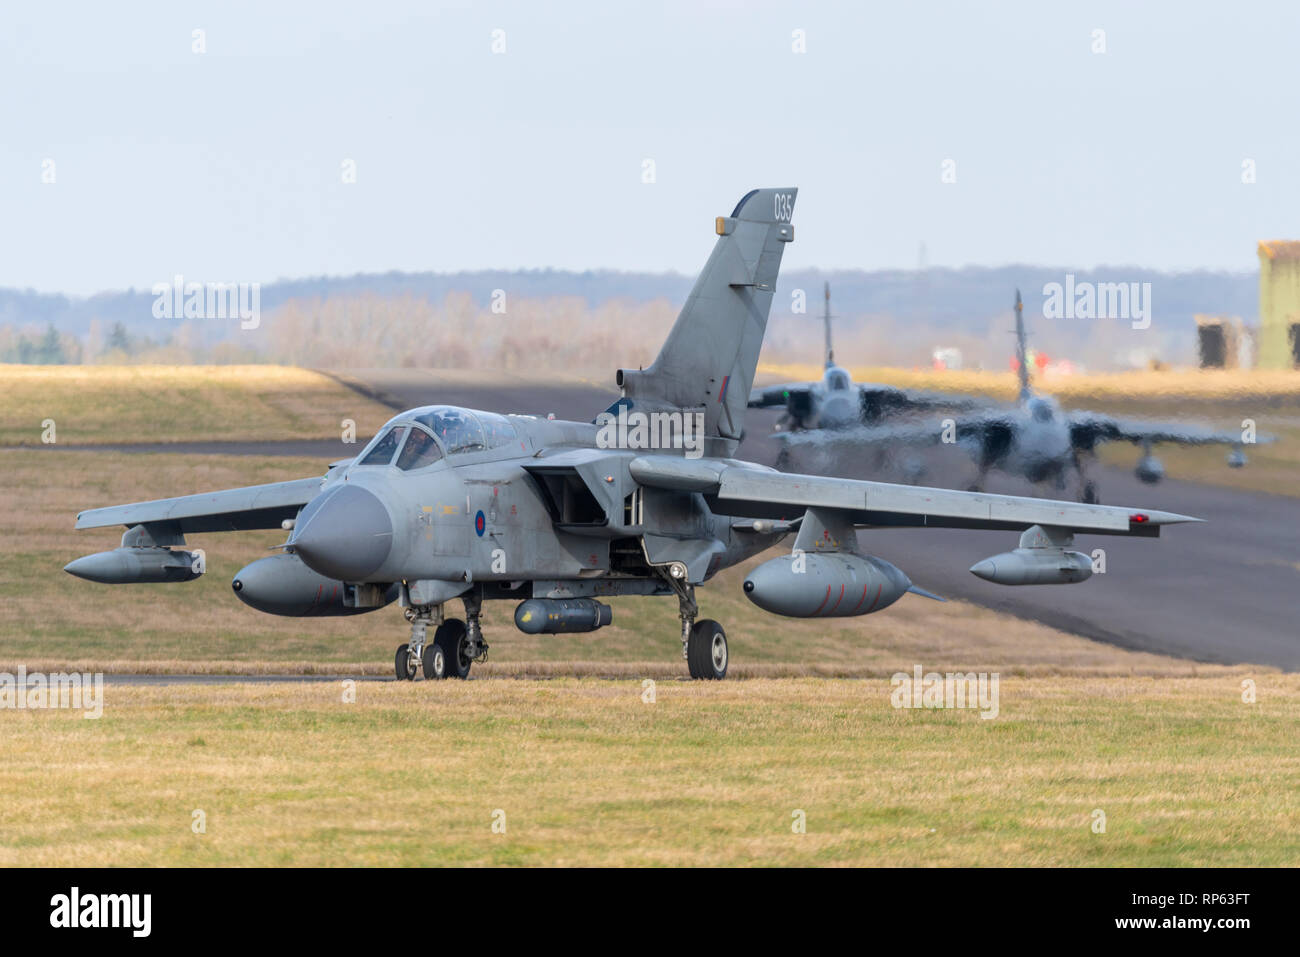 Royal Air Force Panavia Tornado Gr4 fighter jet taxiing out to take part in the RAF Tornado Farewell Tour titled FINale. Fighter jets, planes Stock Photo